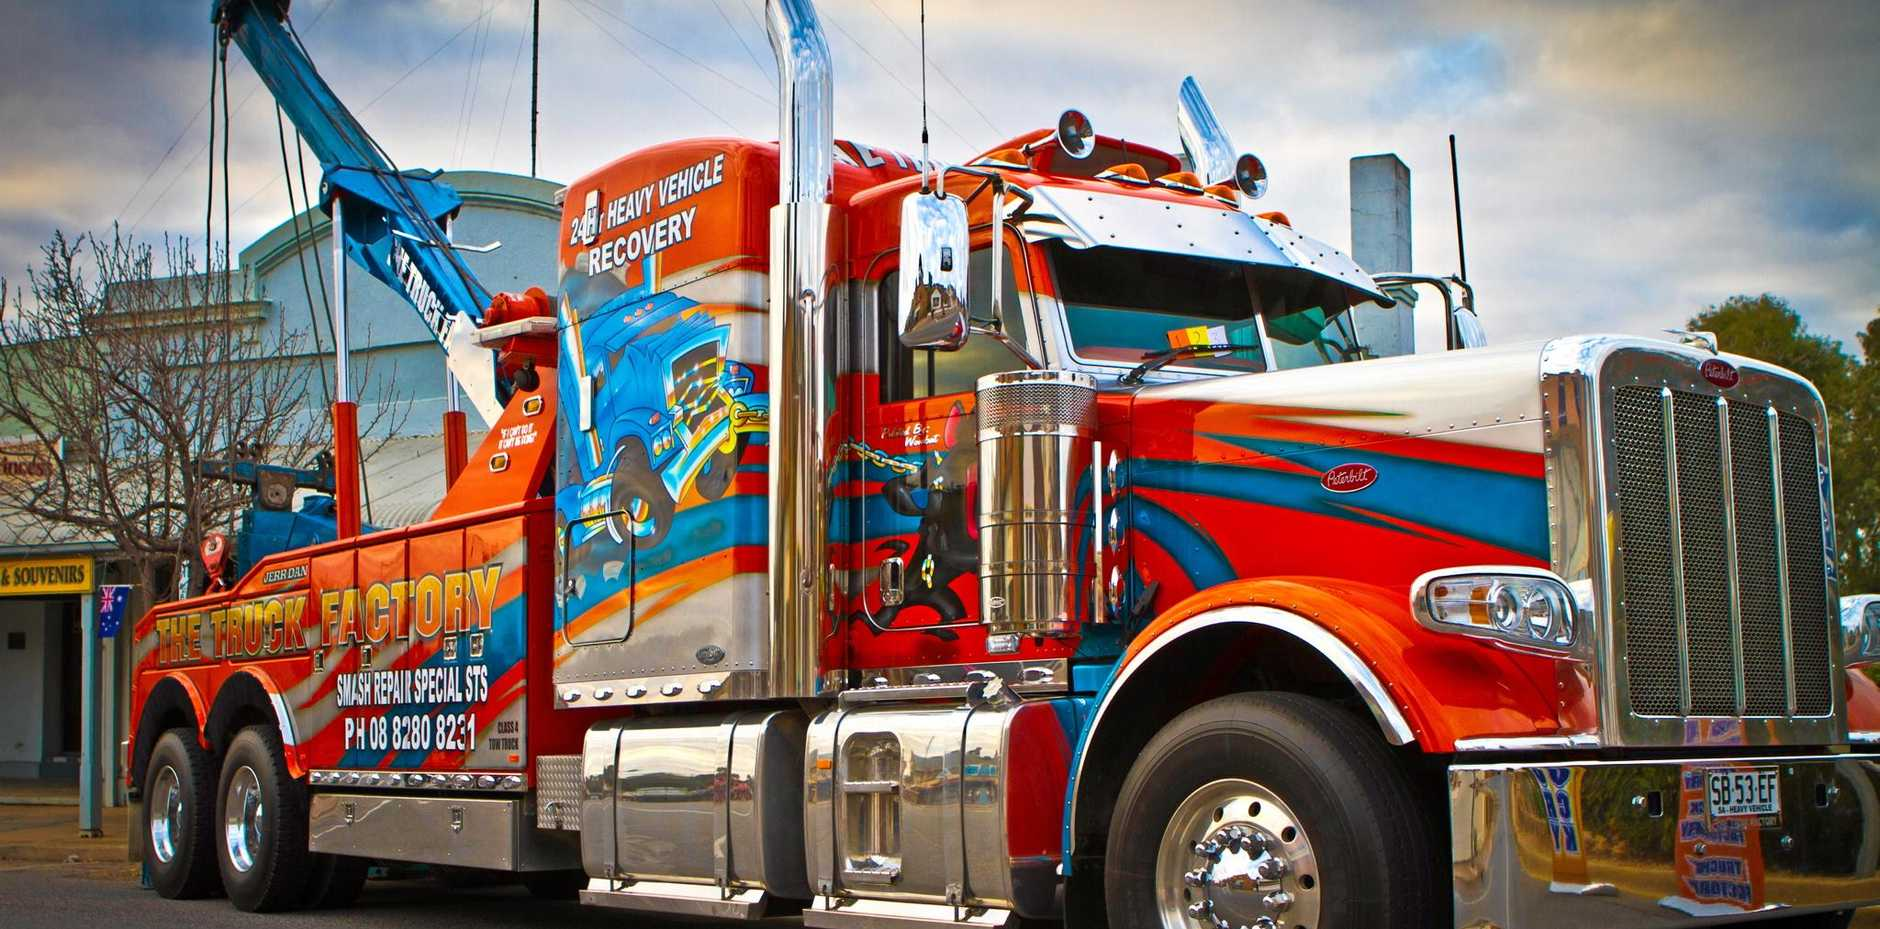 STAR OF THE ROADS: This Truck Factory 389 Peterbilt has won best graphics or signwriting at the mannum truck and ute show in previous years.